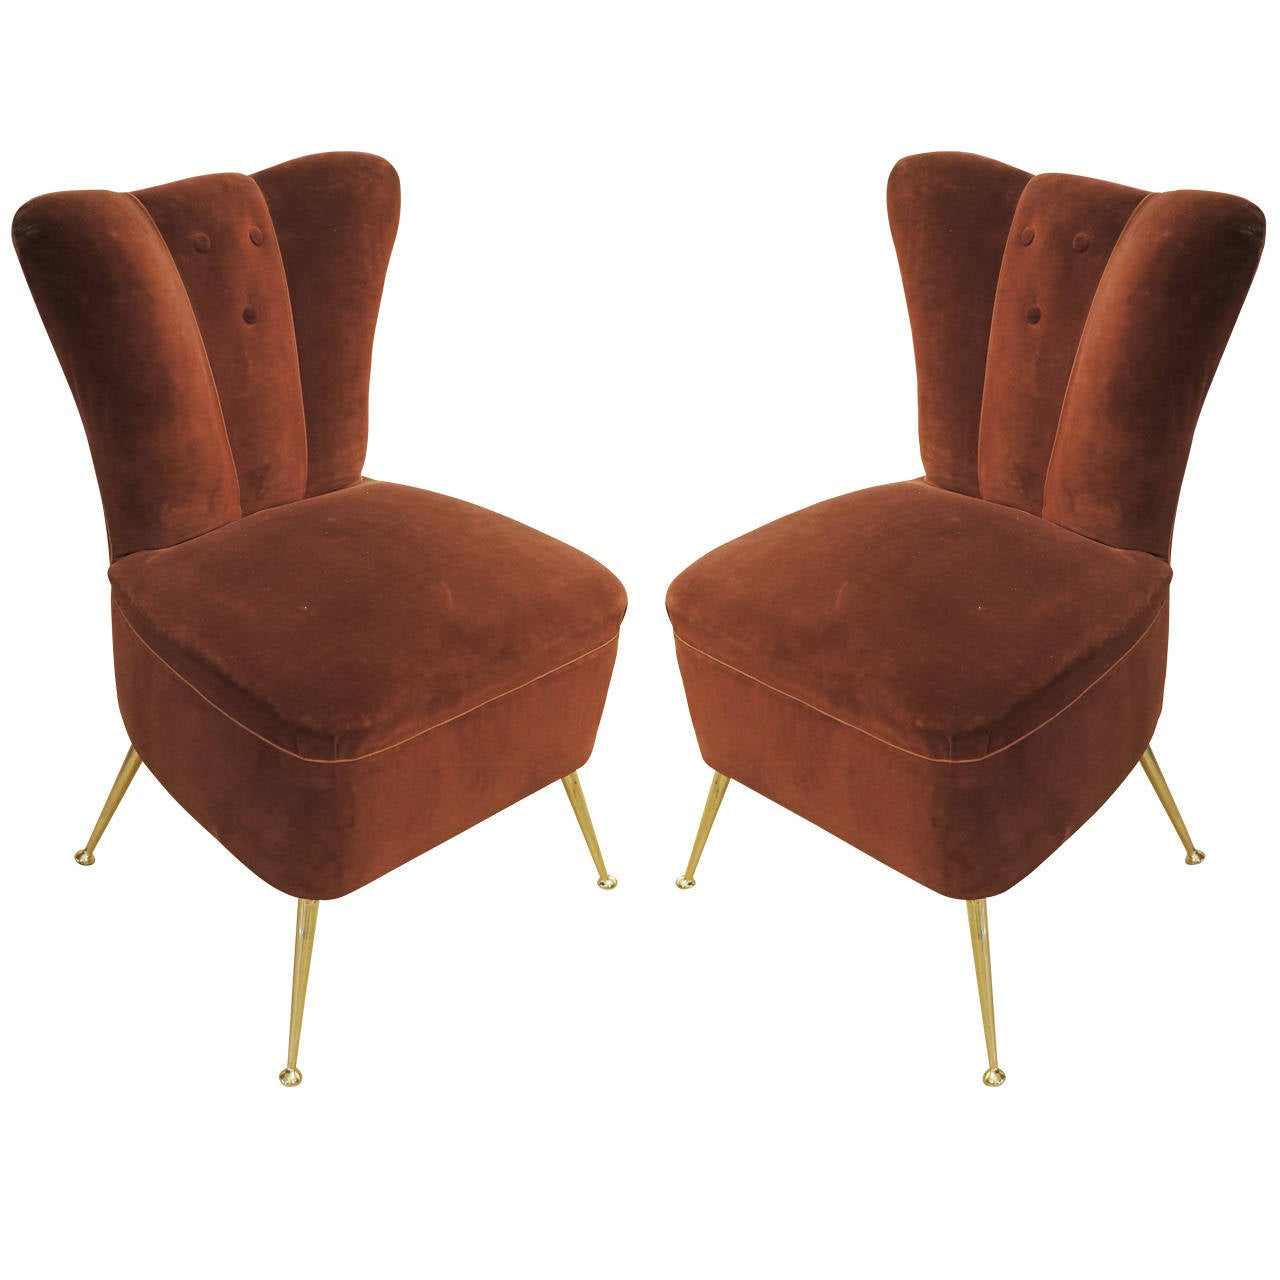 Pair of Slipper Chairs, Italy 1950s